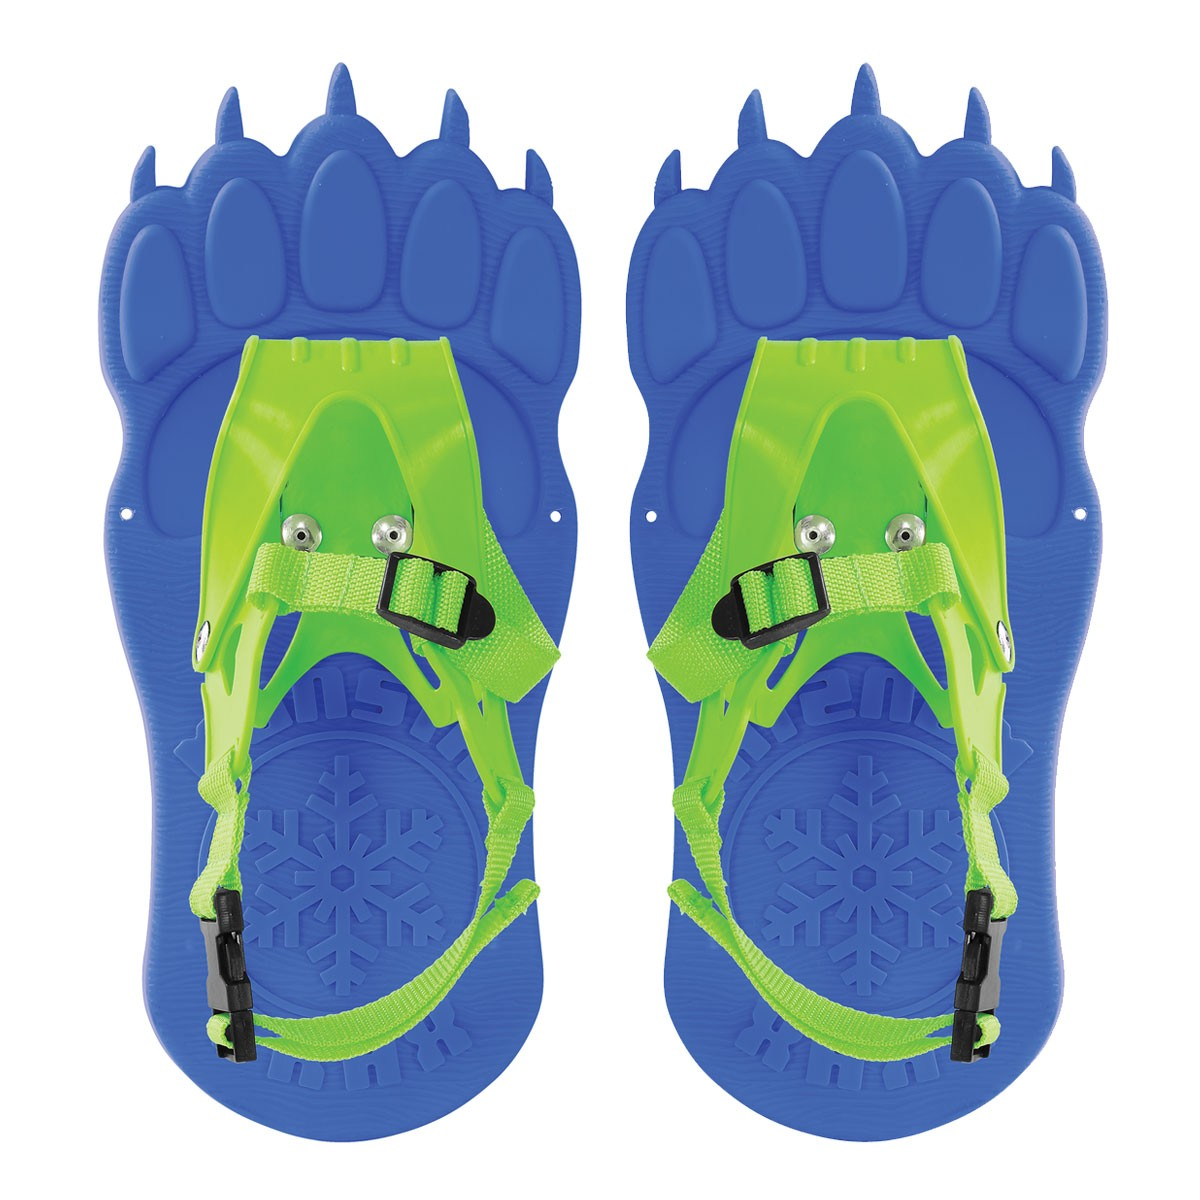 MONSTA TRAX Snowshoes by Airhead Sports Group